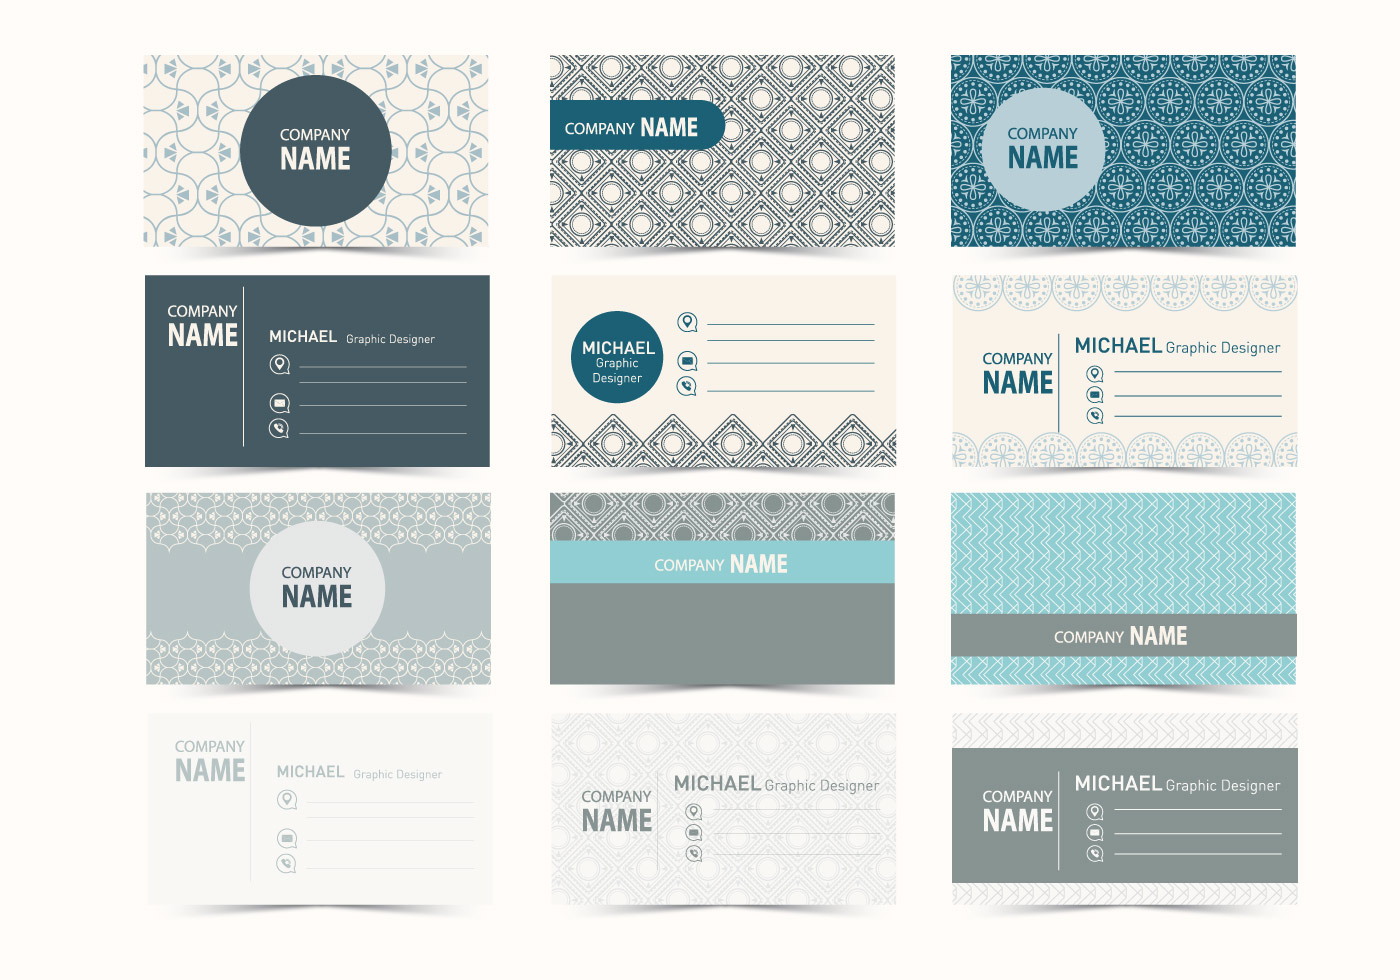 Graphic Design Business Card Vector  Download Free Vector